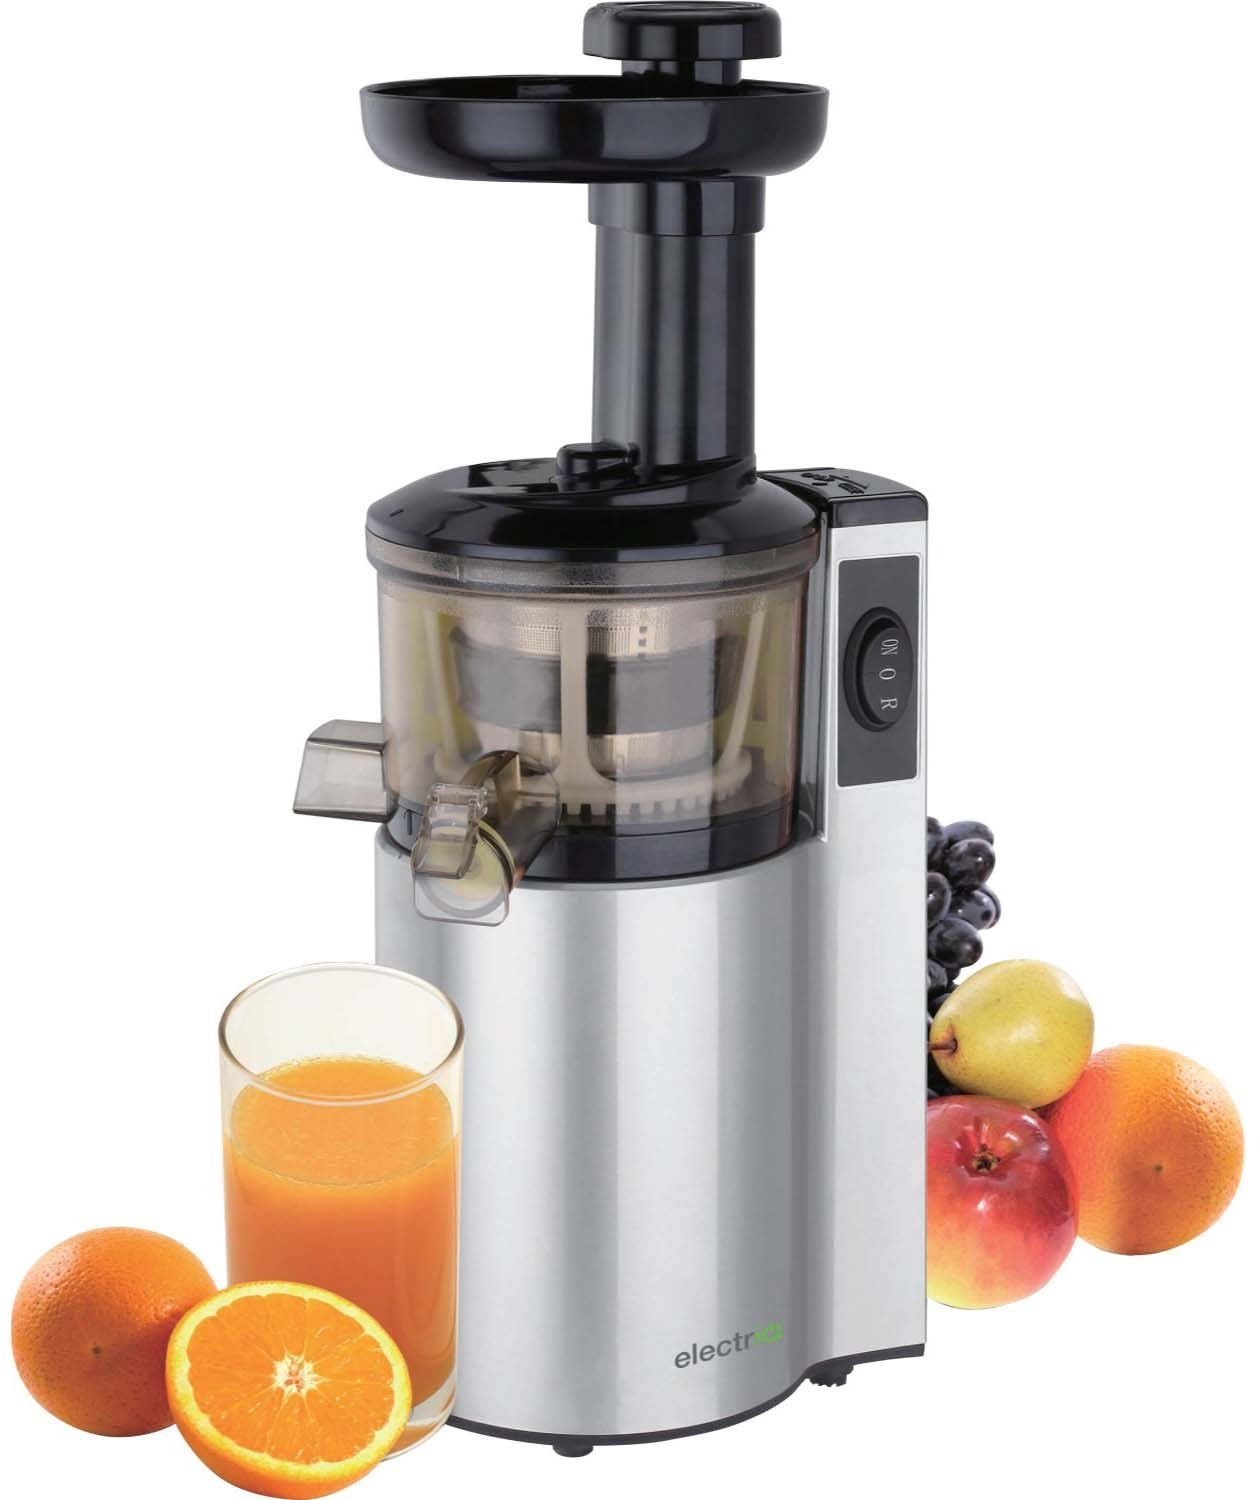 Best Slow Juicer For Greens : ElectriQ Premium Slow Juicer great for cold pressed Greens Juices and Smoothies - BPA Free ...